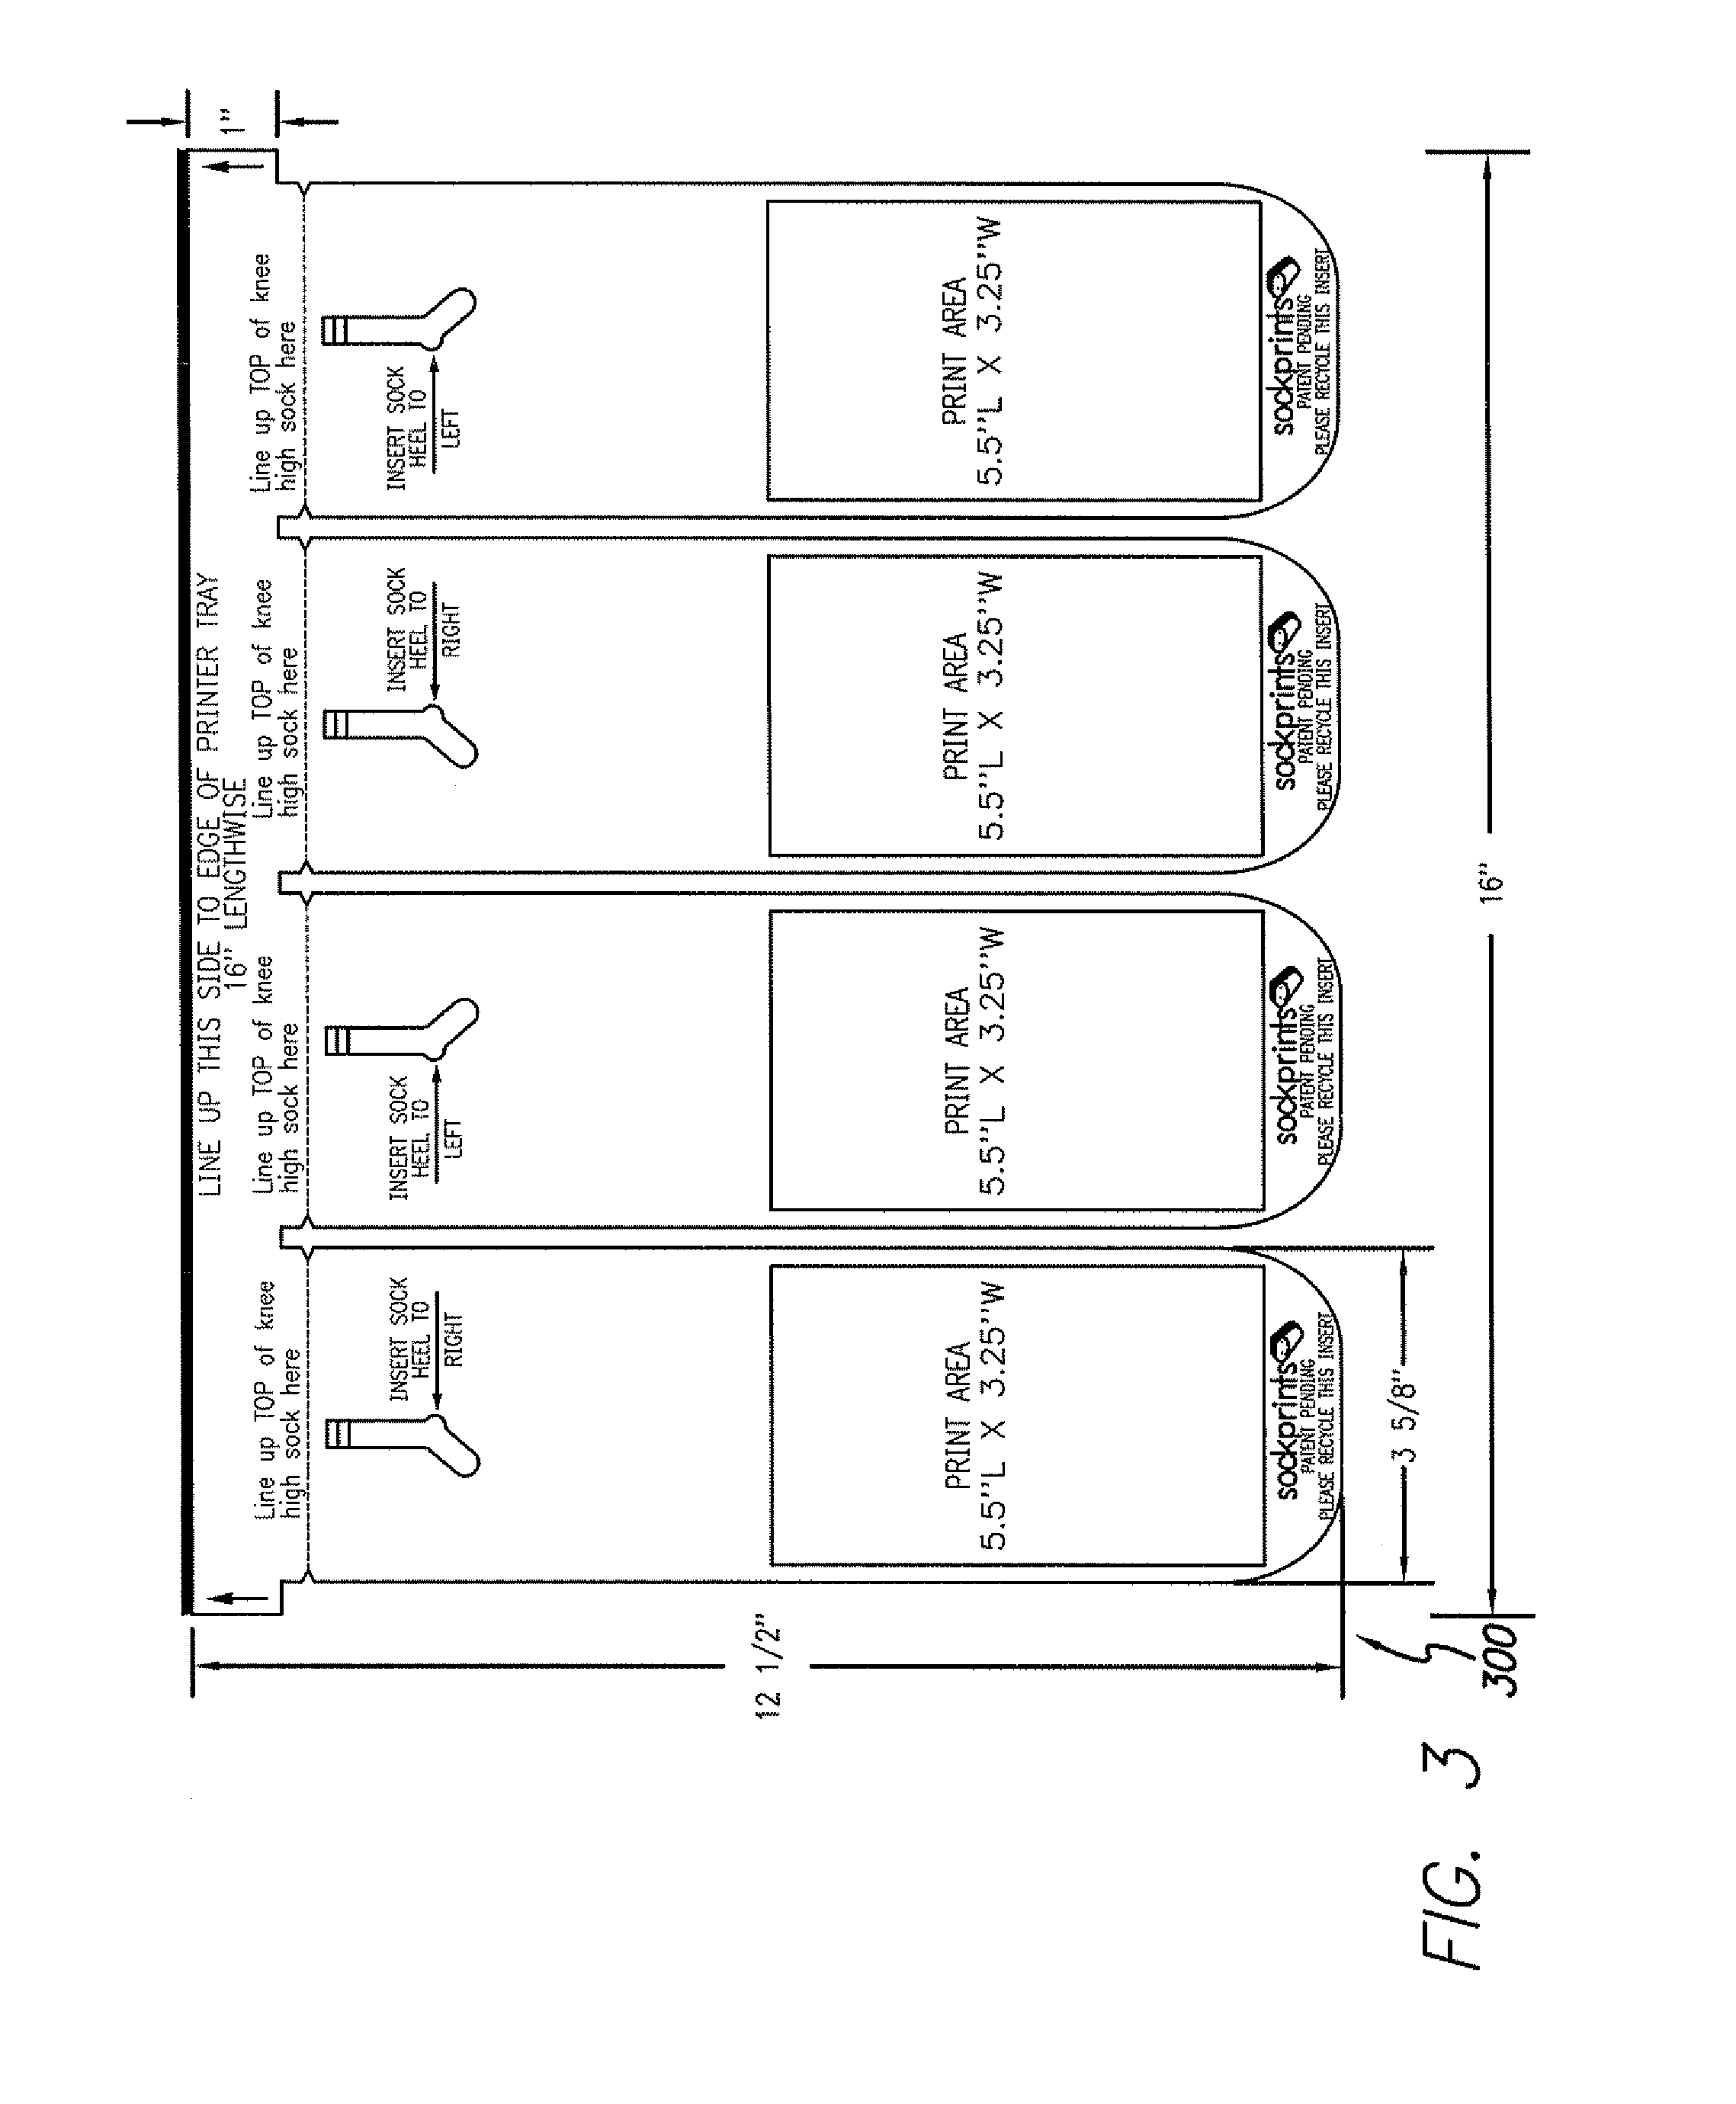 patent us20110036252 printing template google patents. Black Bedroom Furniture Sets. Home Design Ideas